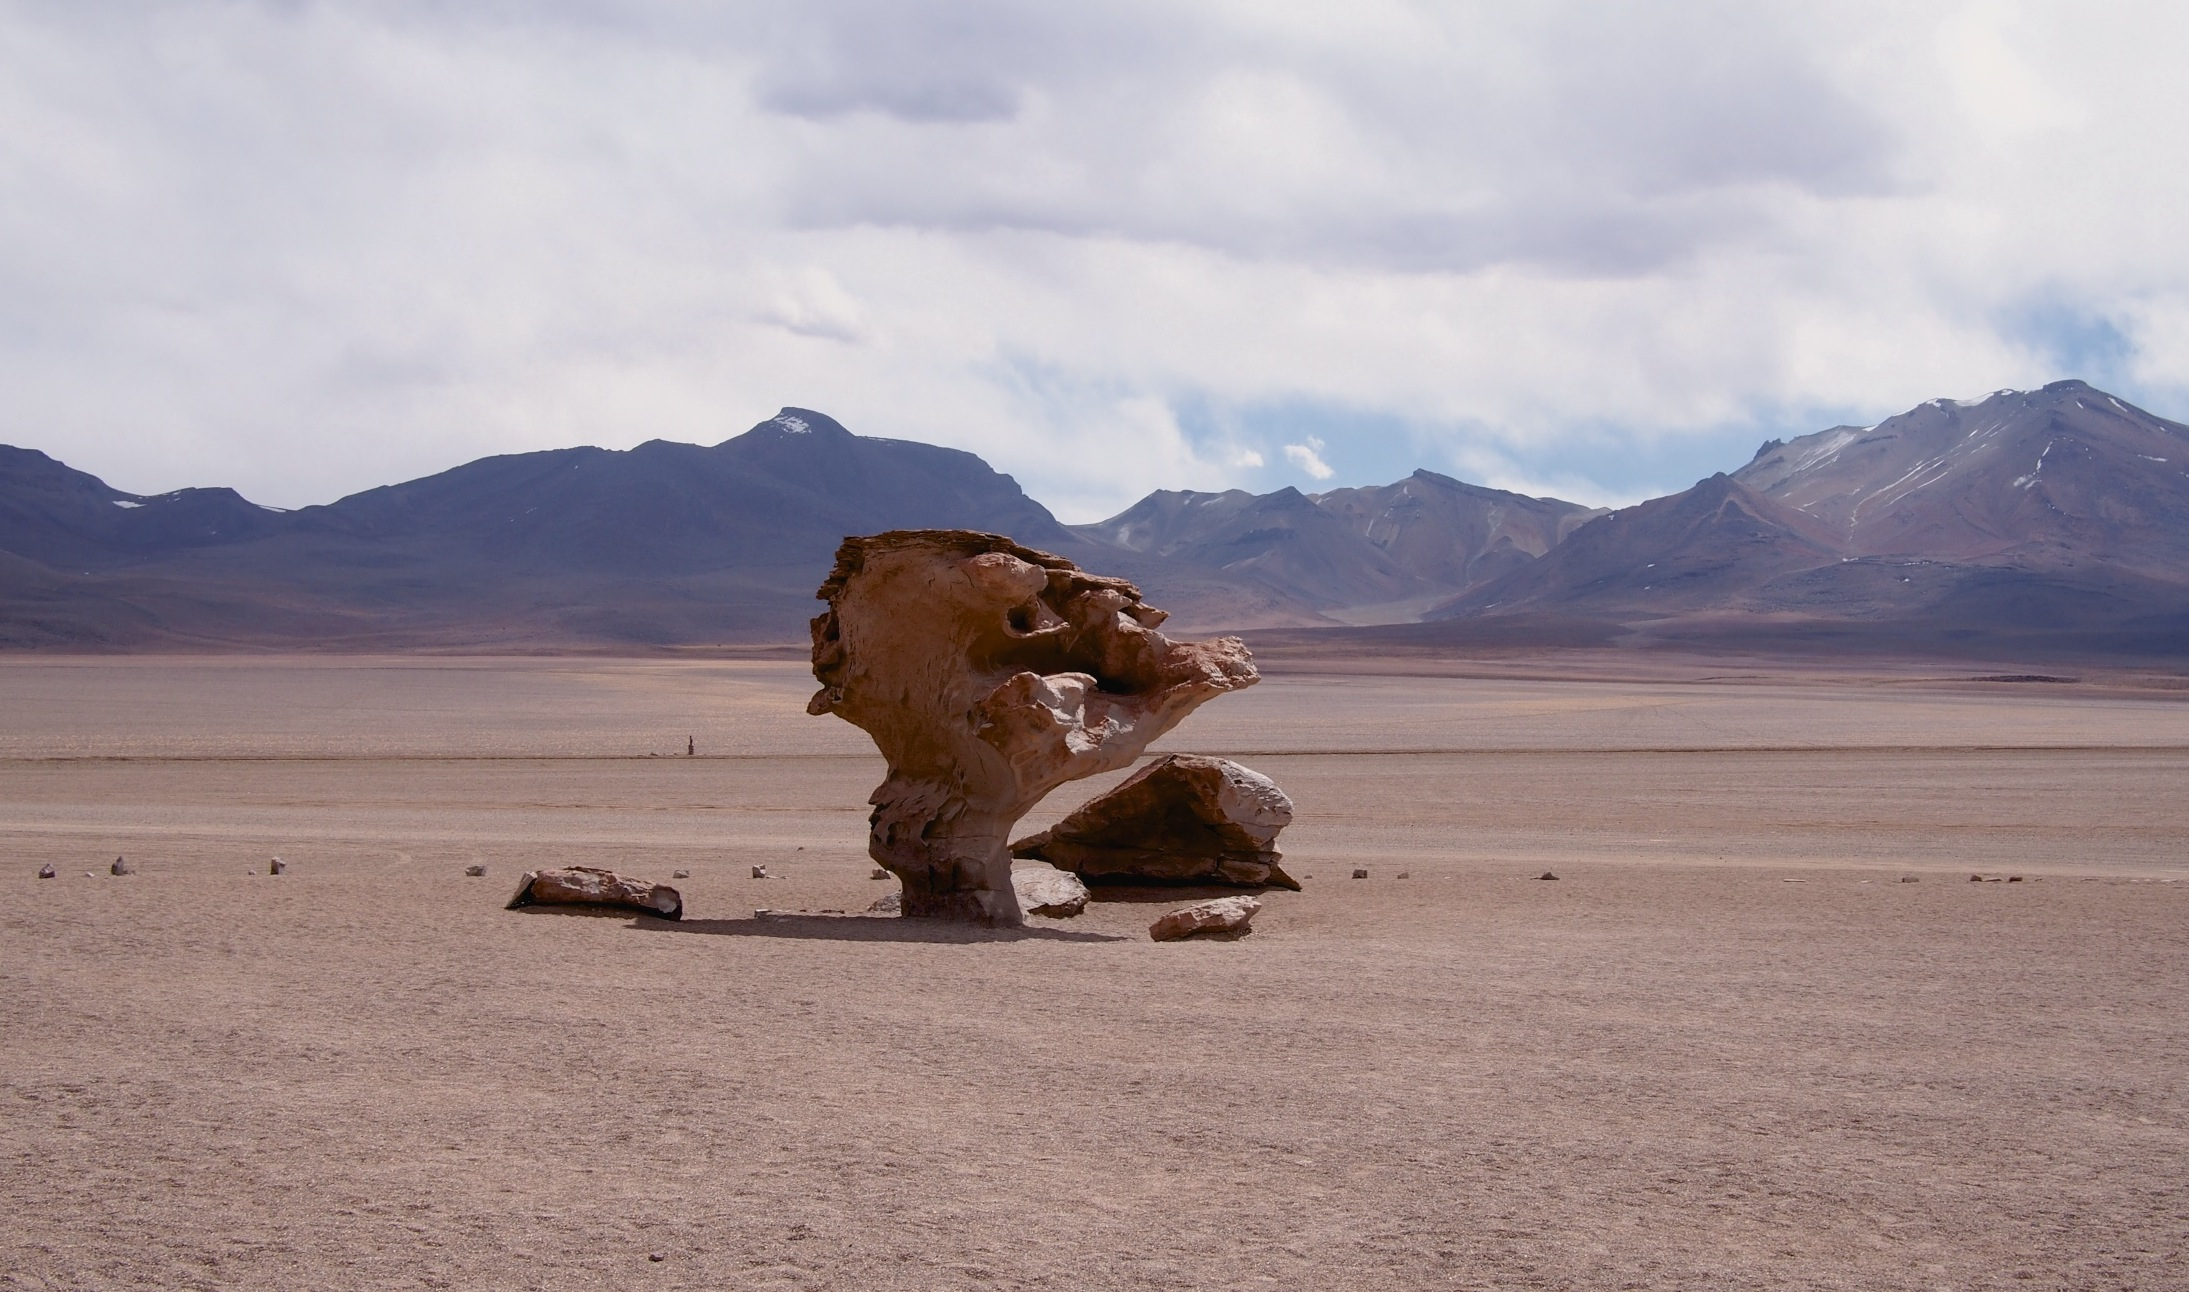 Arbol de Piedra, a rock formation shaped like a giant tree by erosion in the middle of the Siloli desert